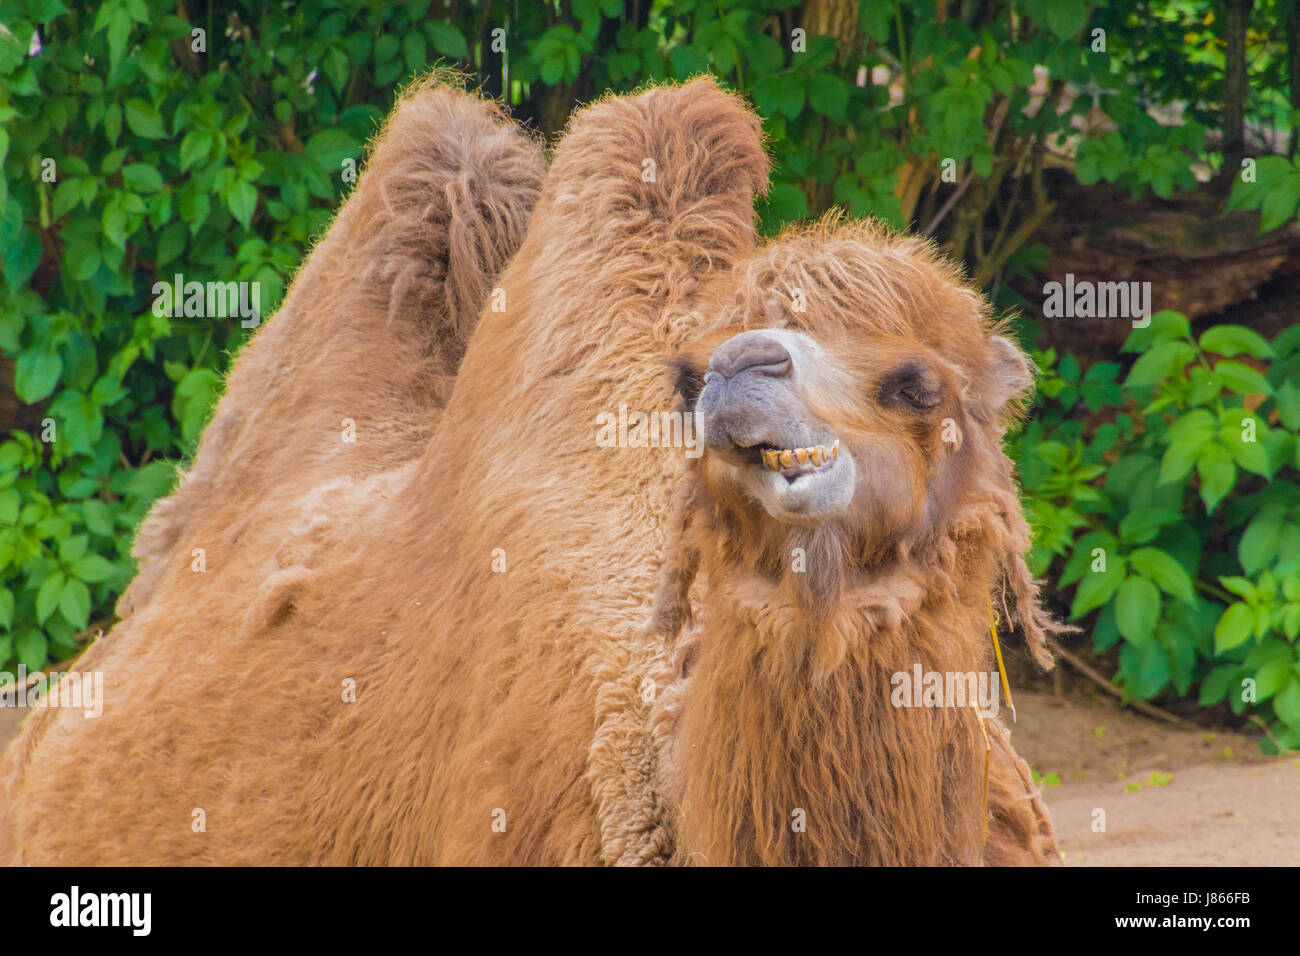 Camel Logo Stock Photos Amp Camel Logo Stock Images Alamy